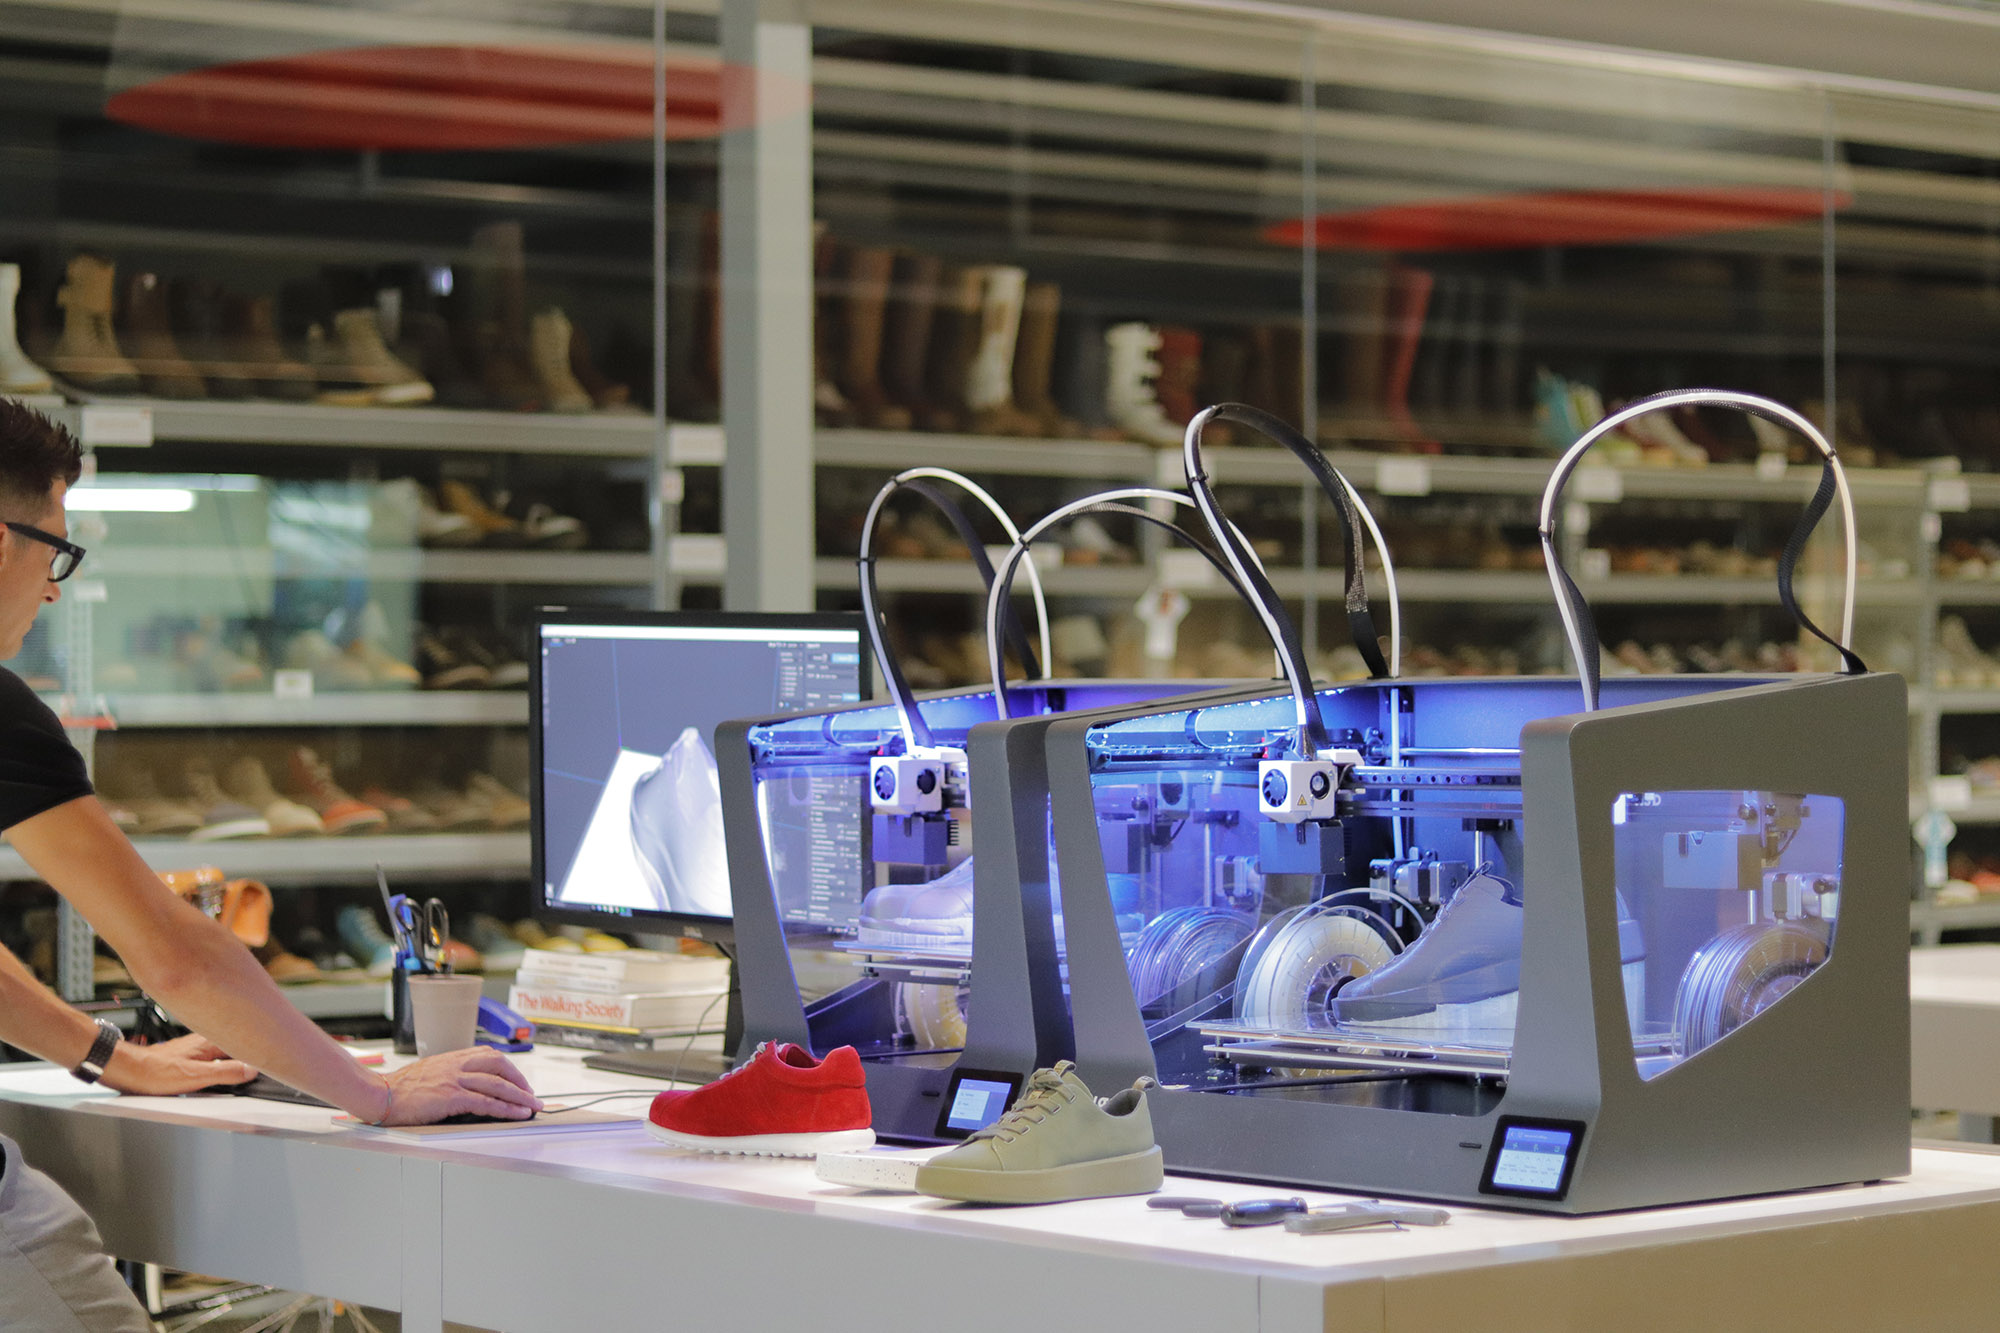 Danobatgroup invests in the BCN3D start-up in order to diversify its technological offer